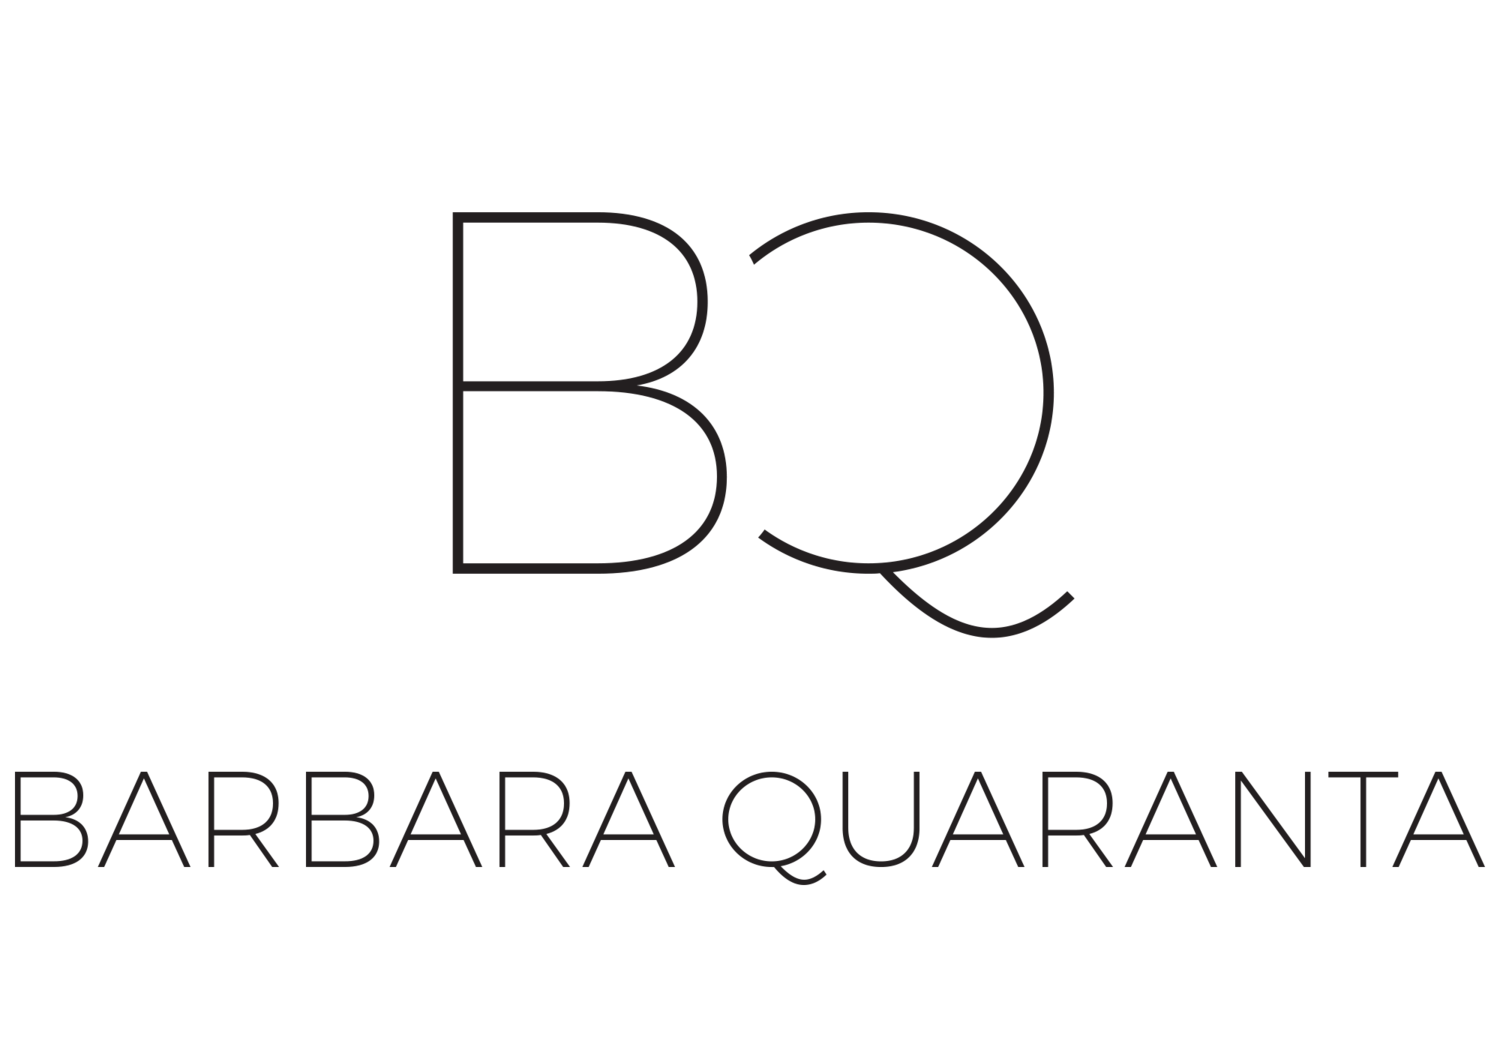 Barbara Quaranta